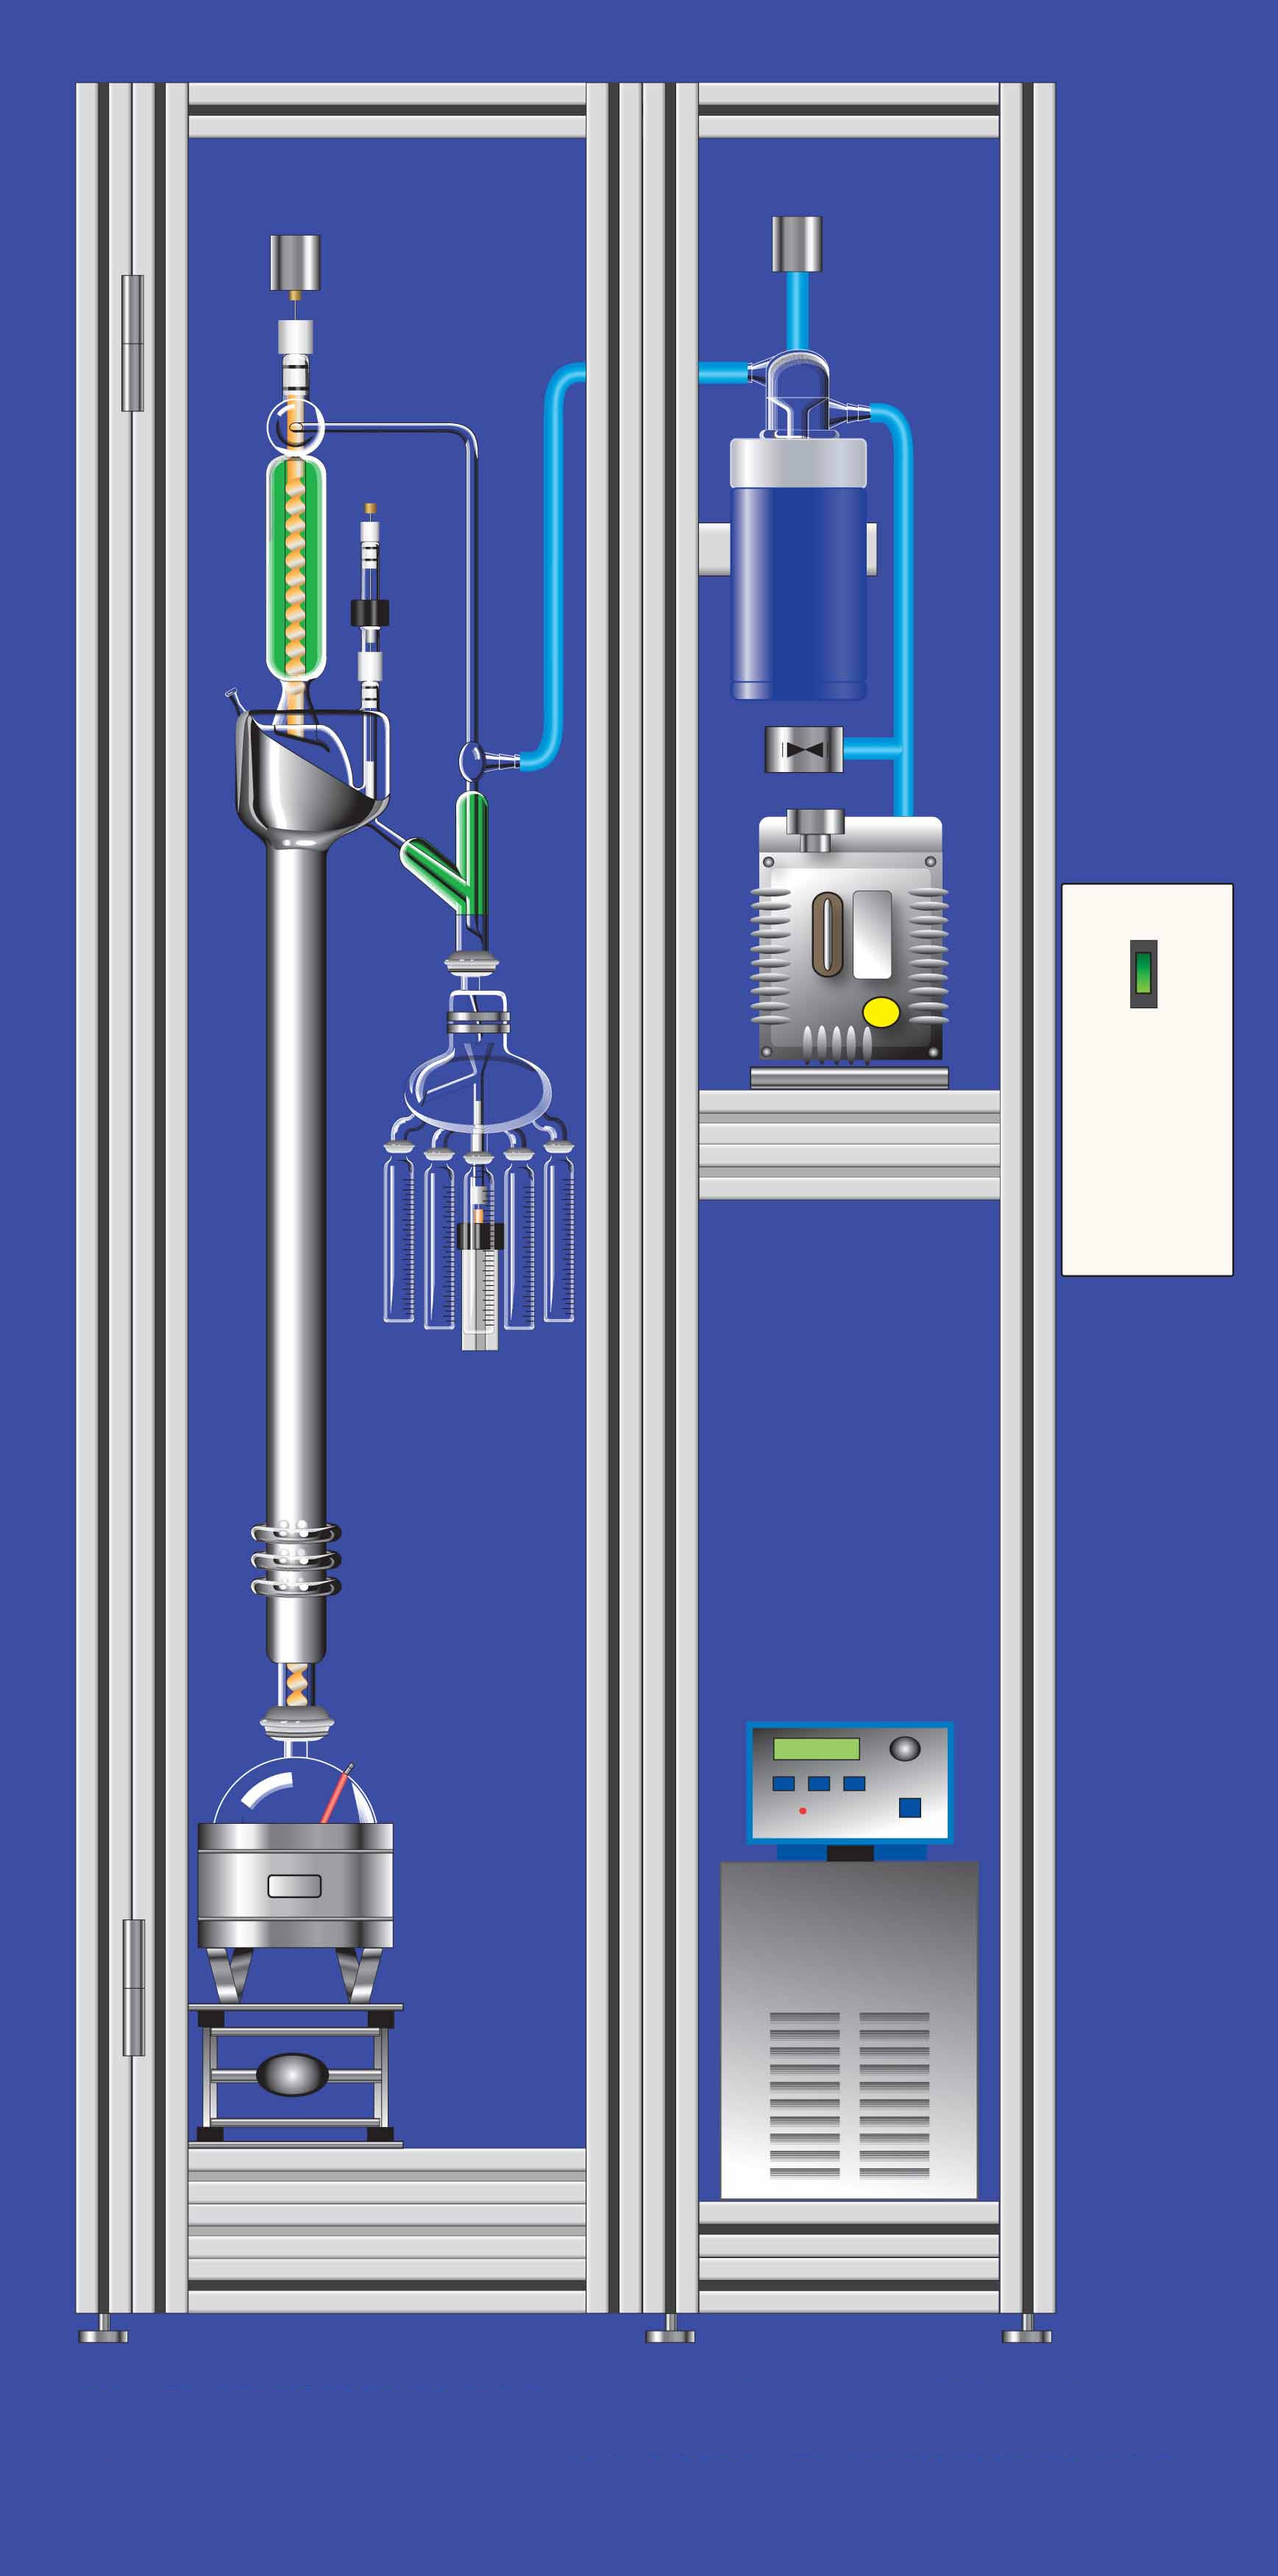 36-100 fractional distillation system.jpg